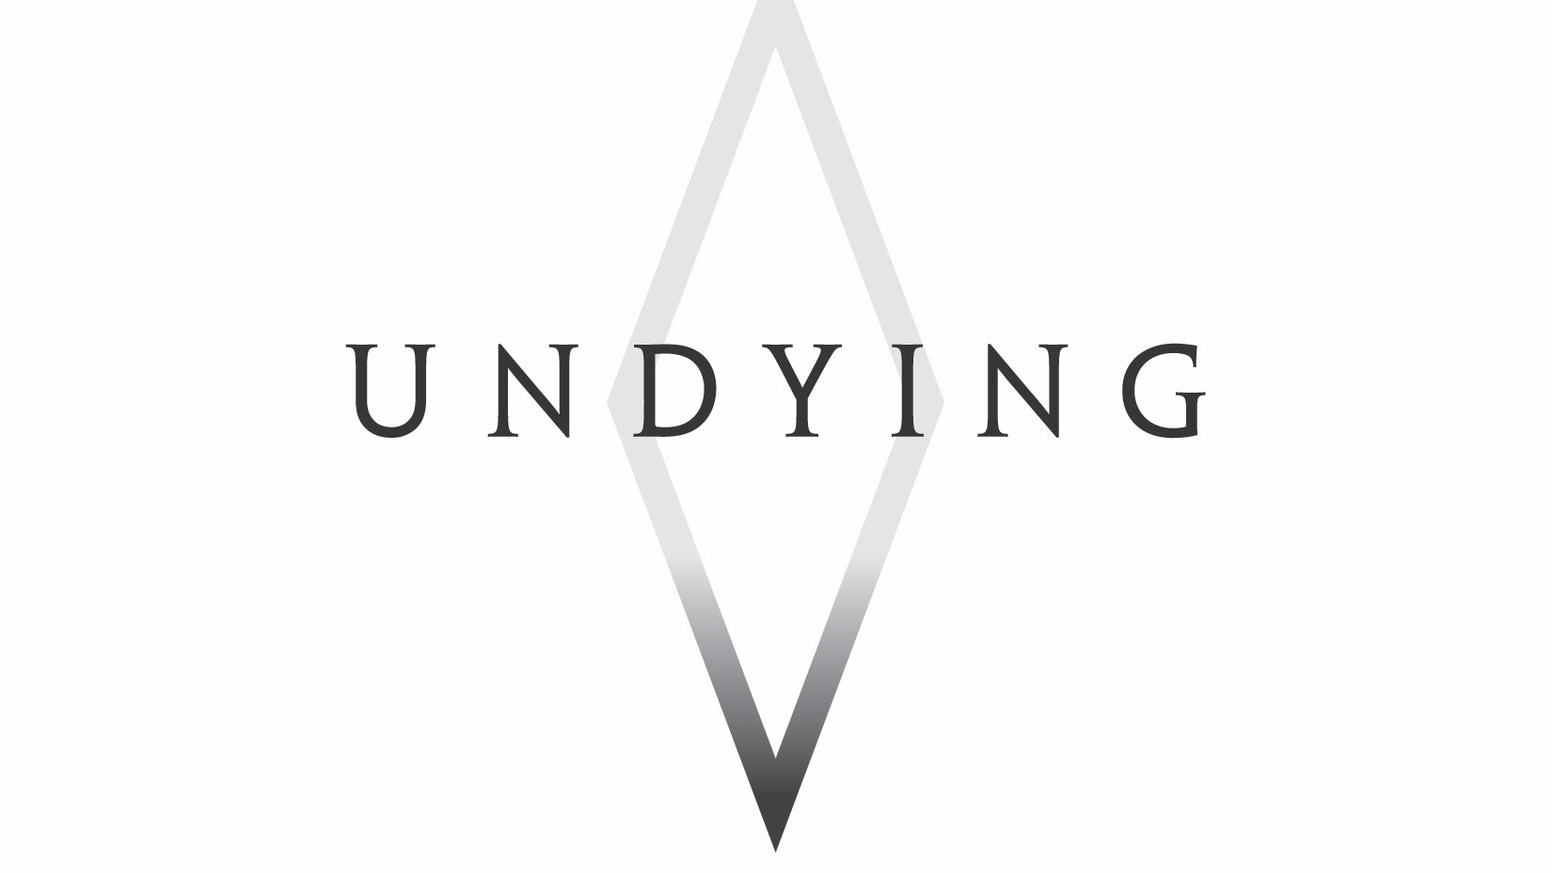 Undying is a diceless, vampire roleplaying game of predation and intrigue. Your world is blood, debt, humanity, and status.